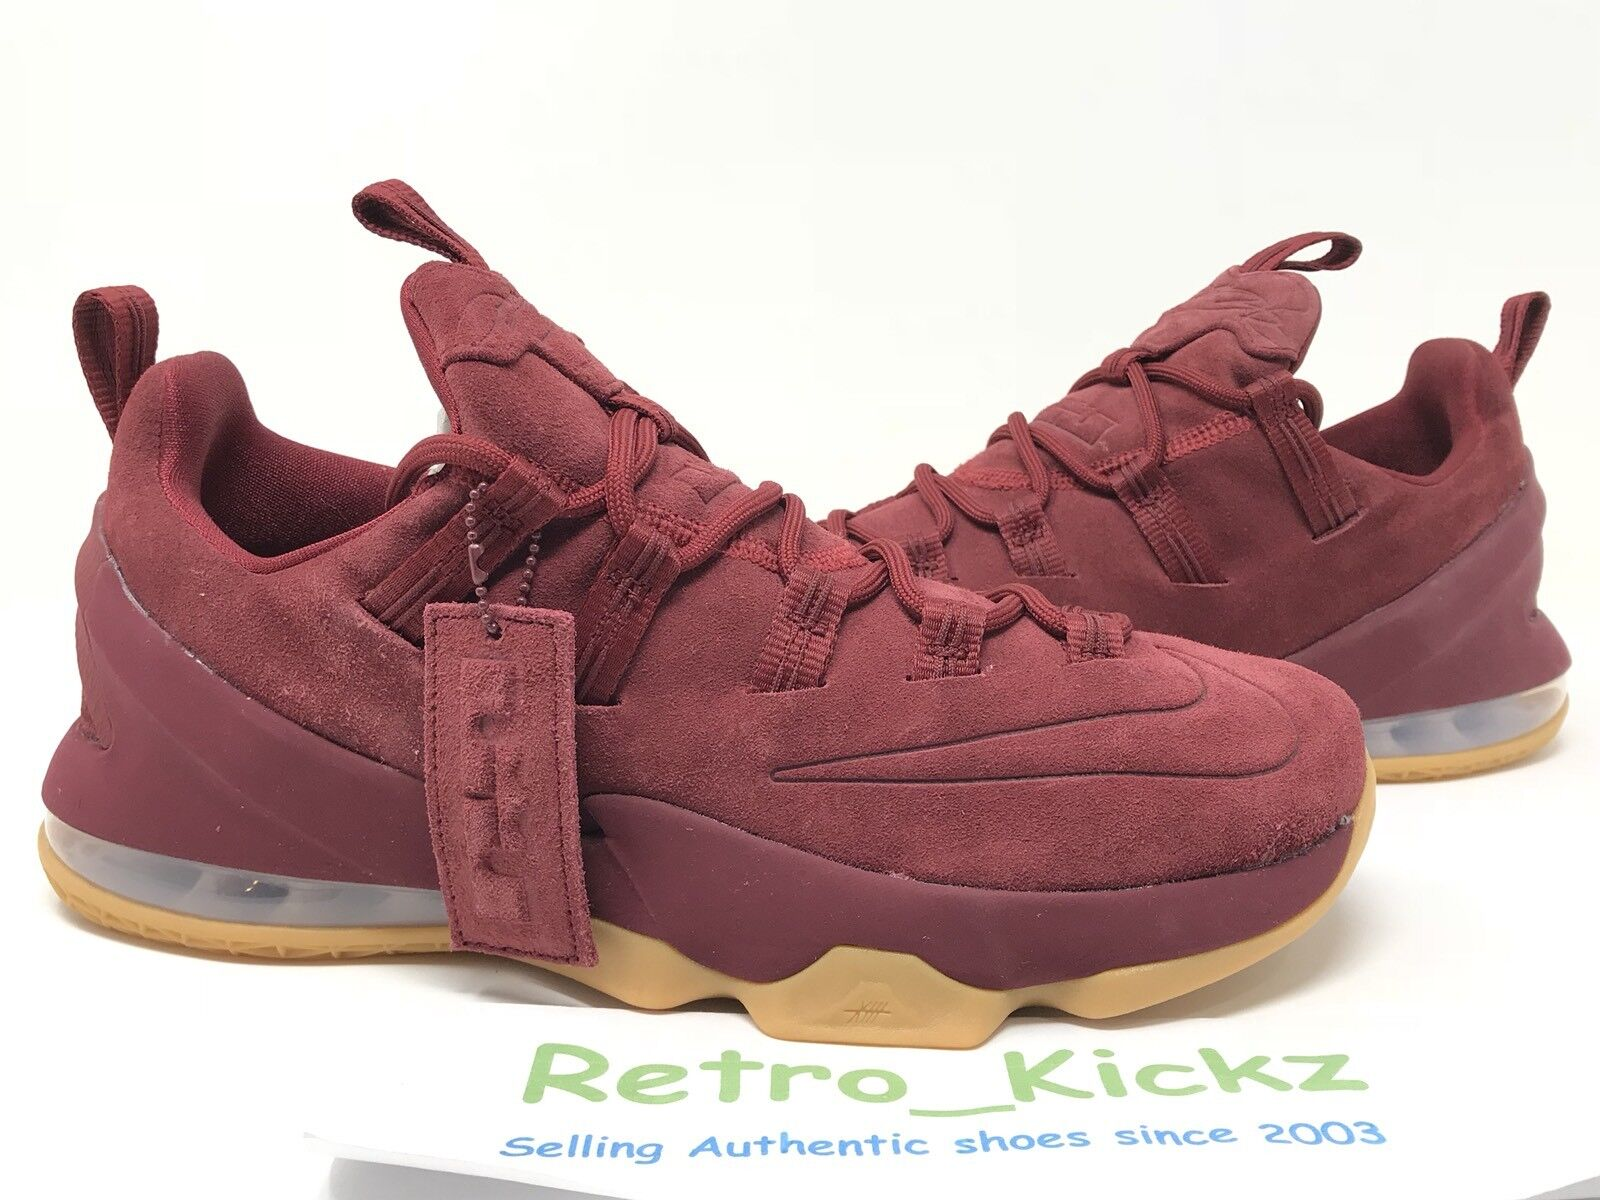 dd8db876aaccf AH8289 AH8289 AH8289 600 NIKE LEBRON XIII 13 LOW PREMIUM BURGANDY RED GUM  BASKETBALL 8.5 MENS